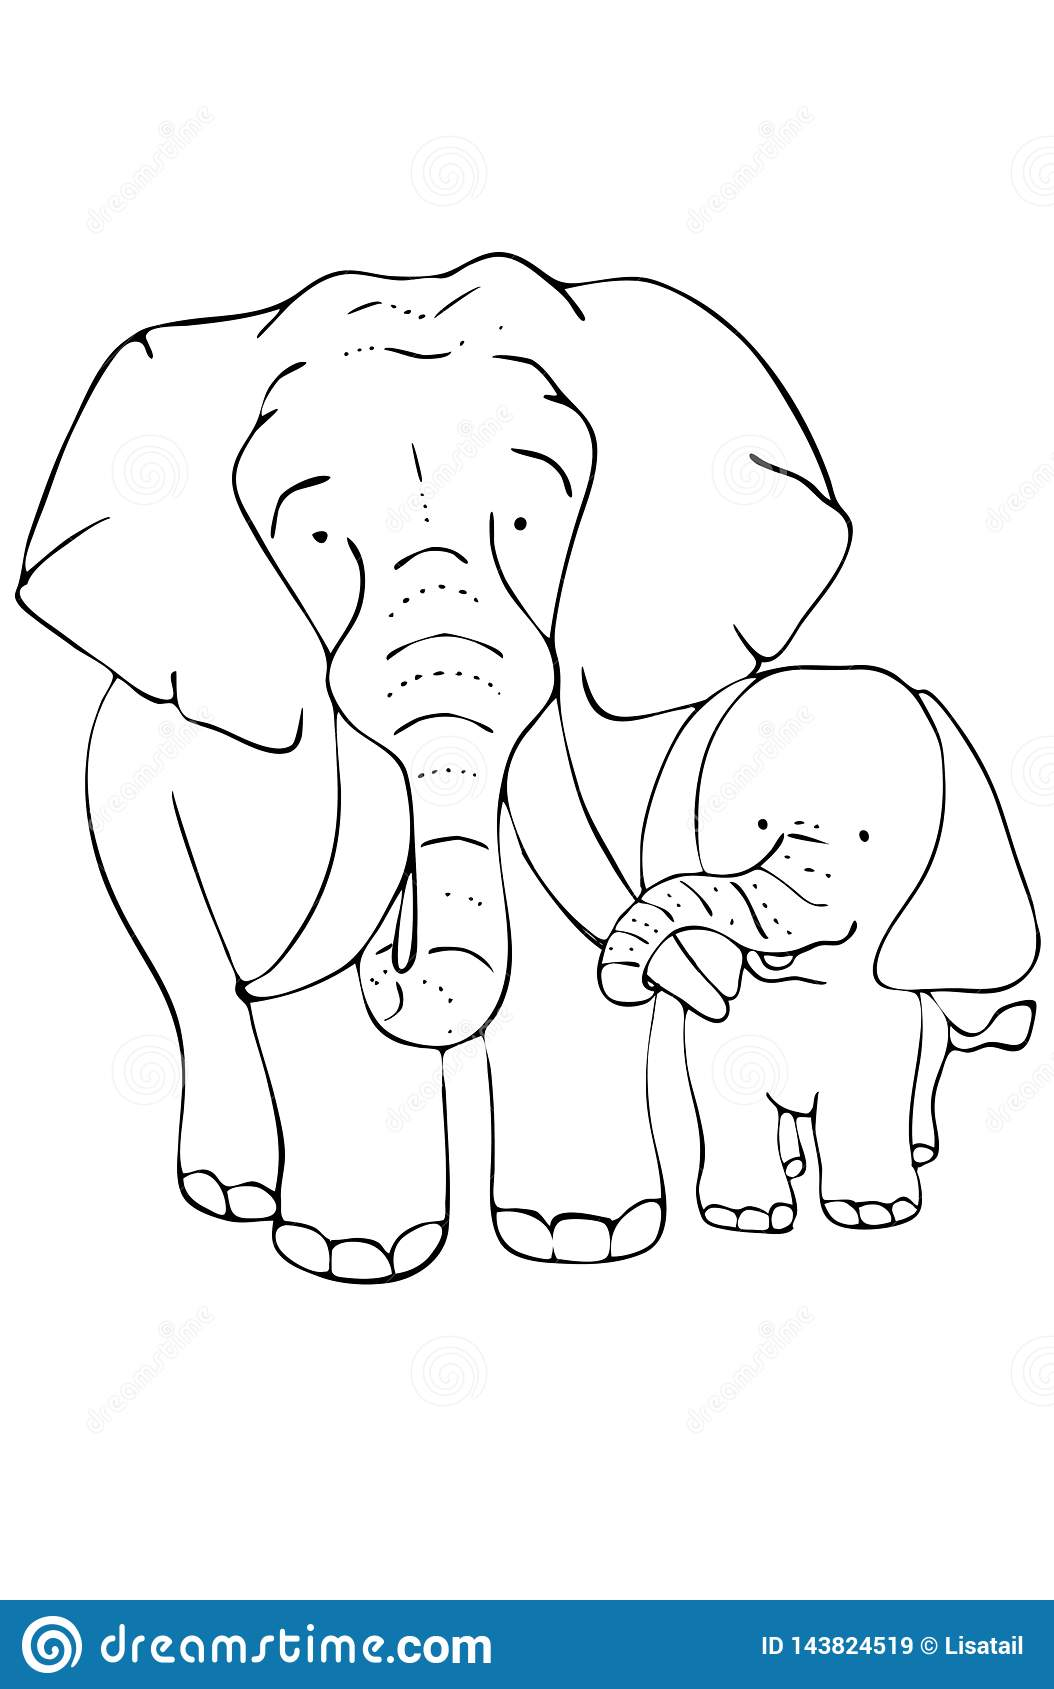 Page For Coloring Mother Elephant And Baby Elephant Stock Illustration Illustration Of Page Pachyderm 143824519